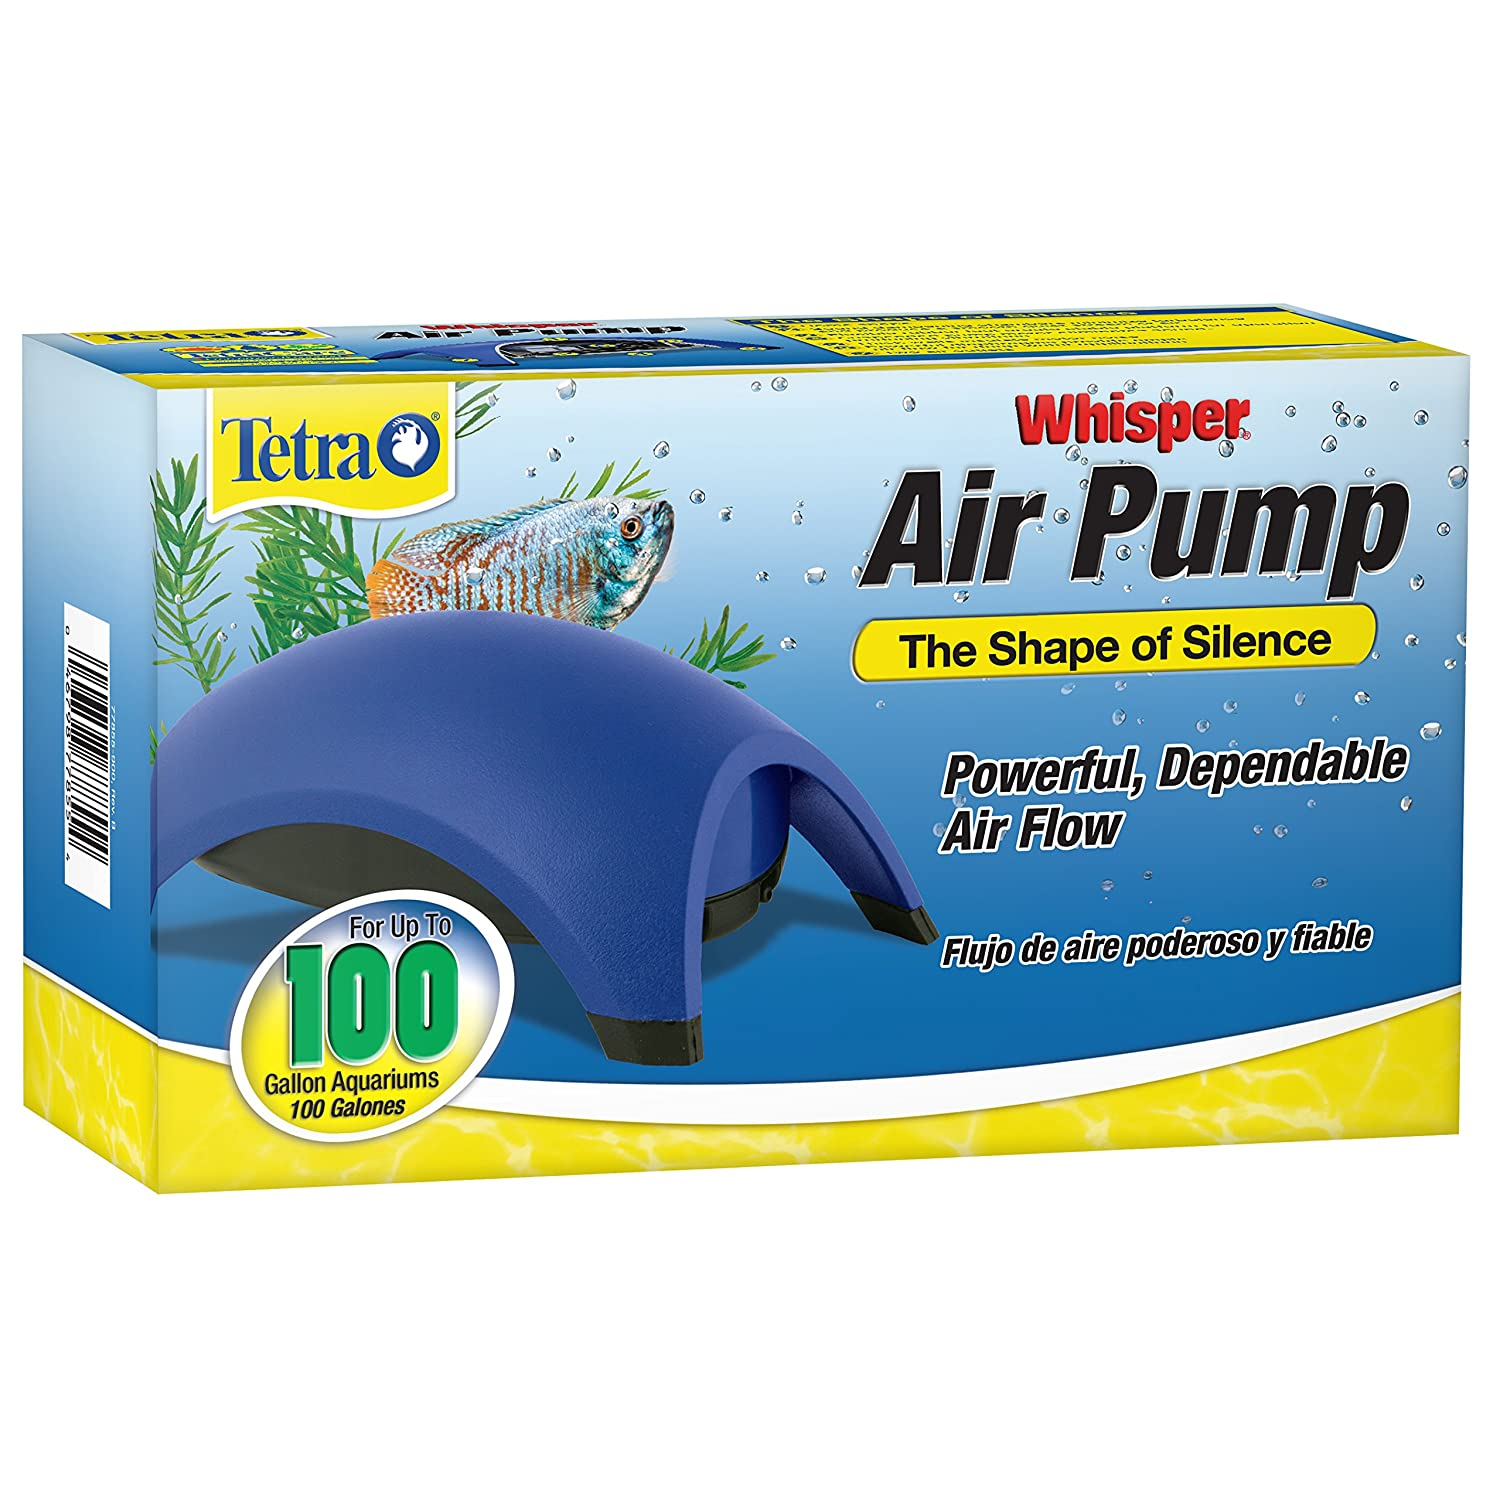 919Nc0VheXL._SL1500_ amazon com tetra 77855 whisper air pump, 100 gallon aquarium  at cos-gaming.co